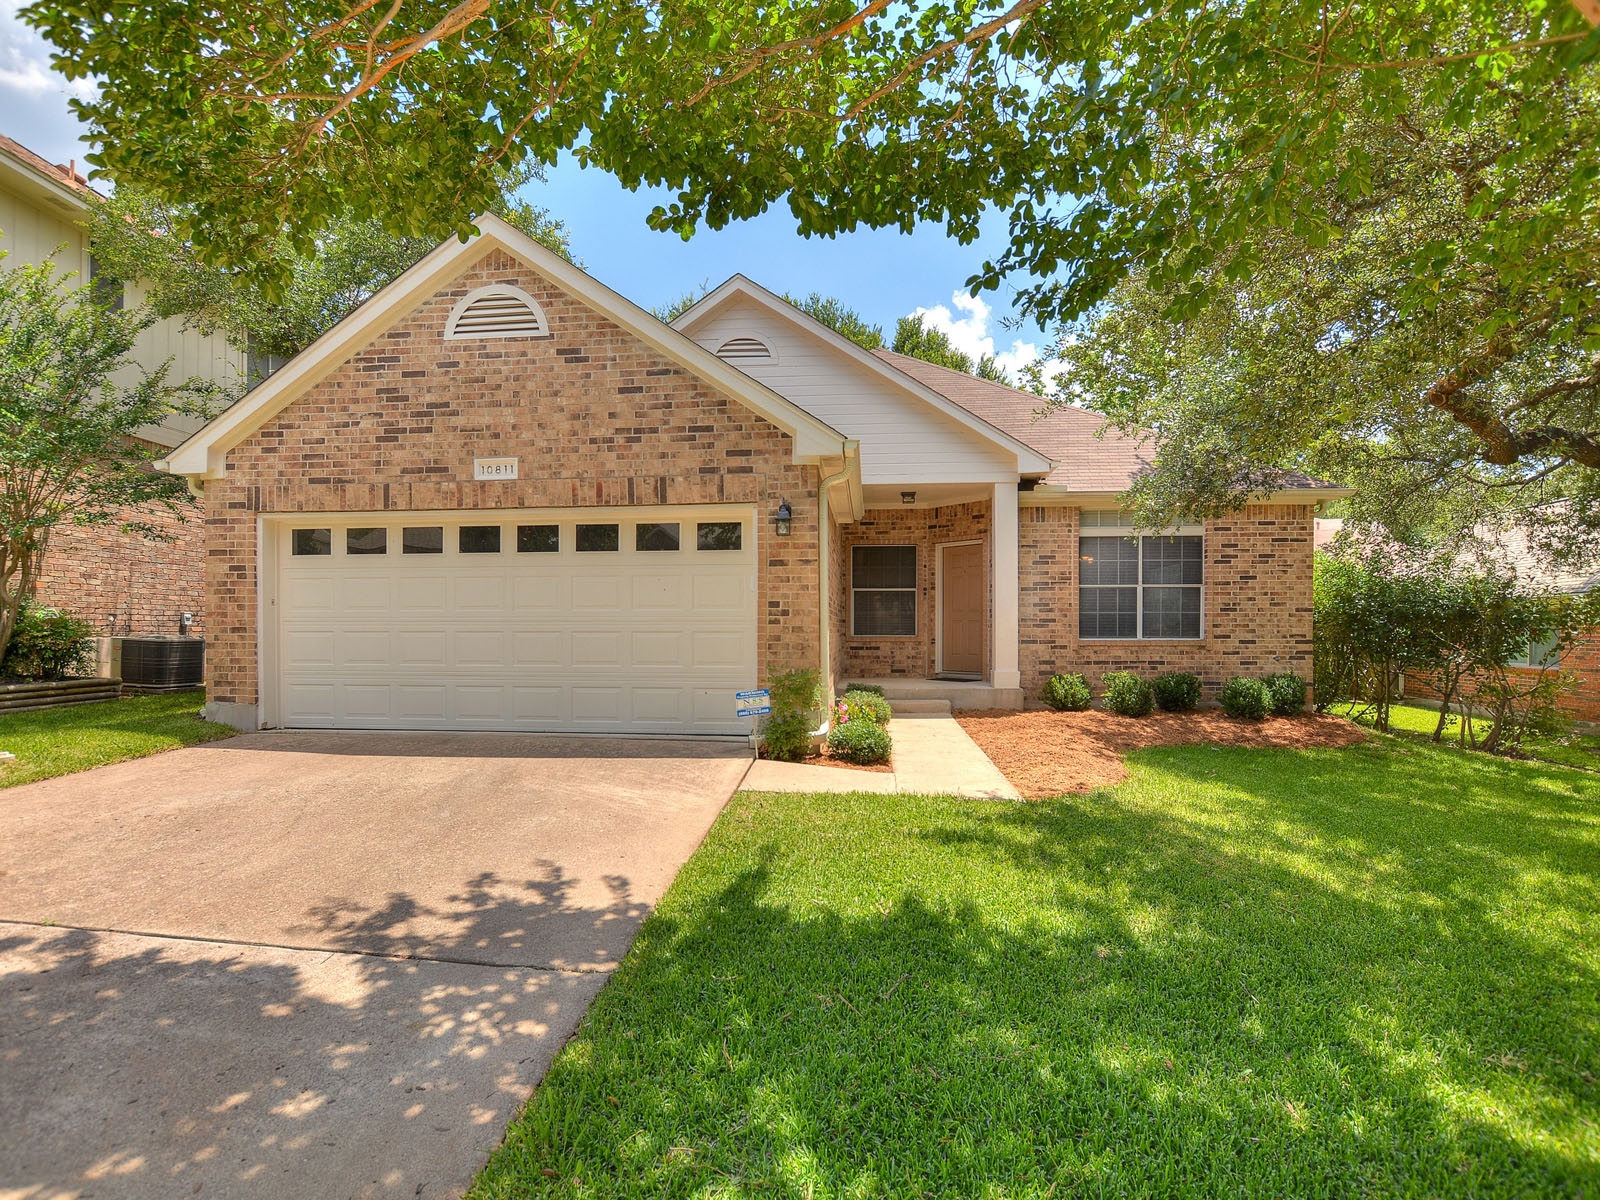 Single Family Home for Sale at Charming Single Story Home 10811 Sierra Oaks Austin, Texas 78759 United States